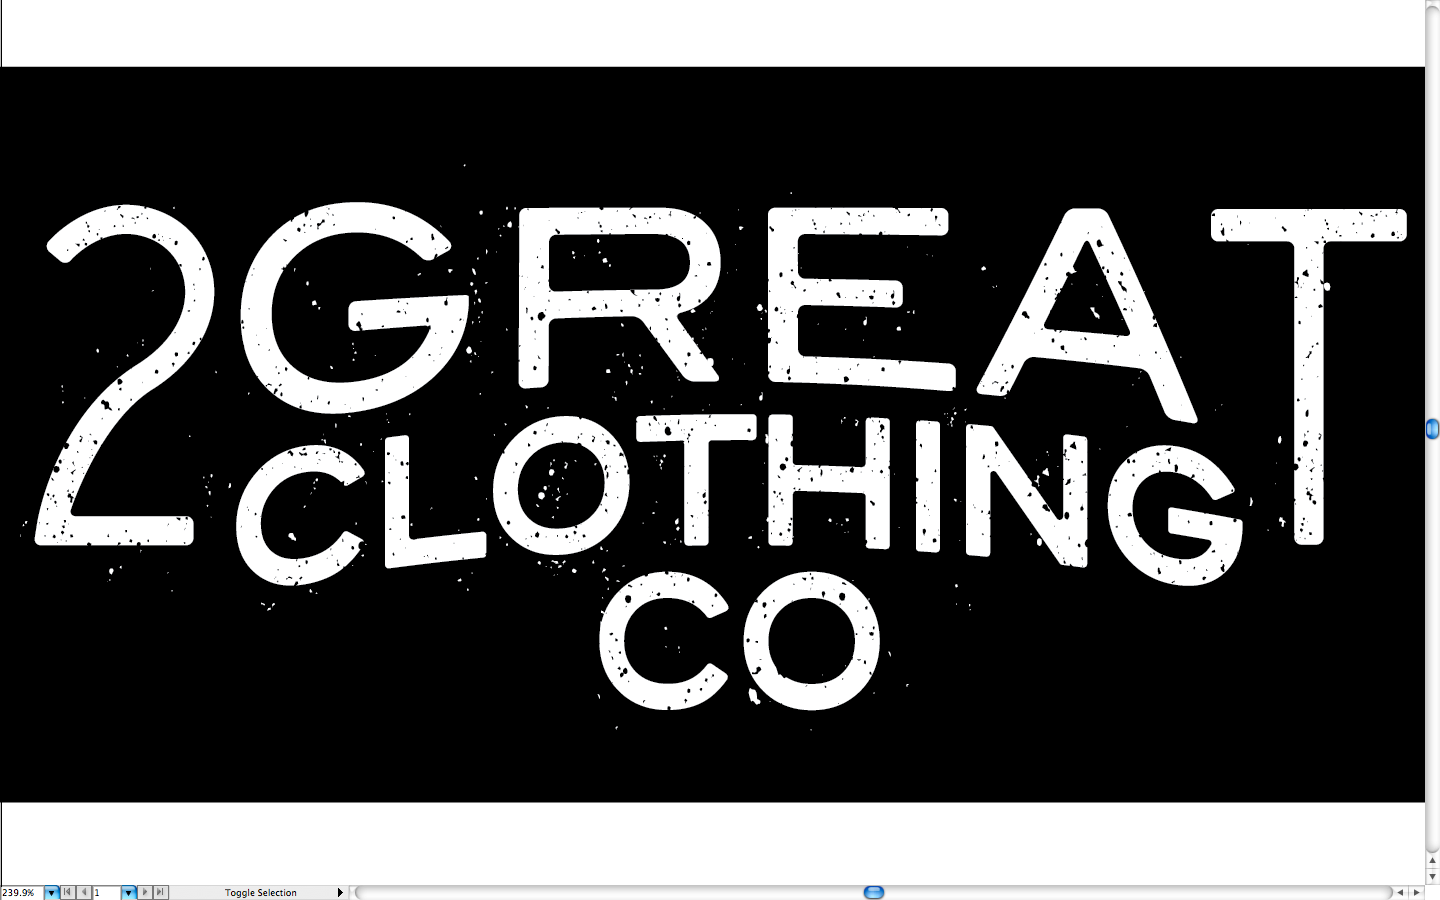 2Great Clothing Co. - image 21 - student project